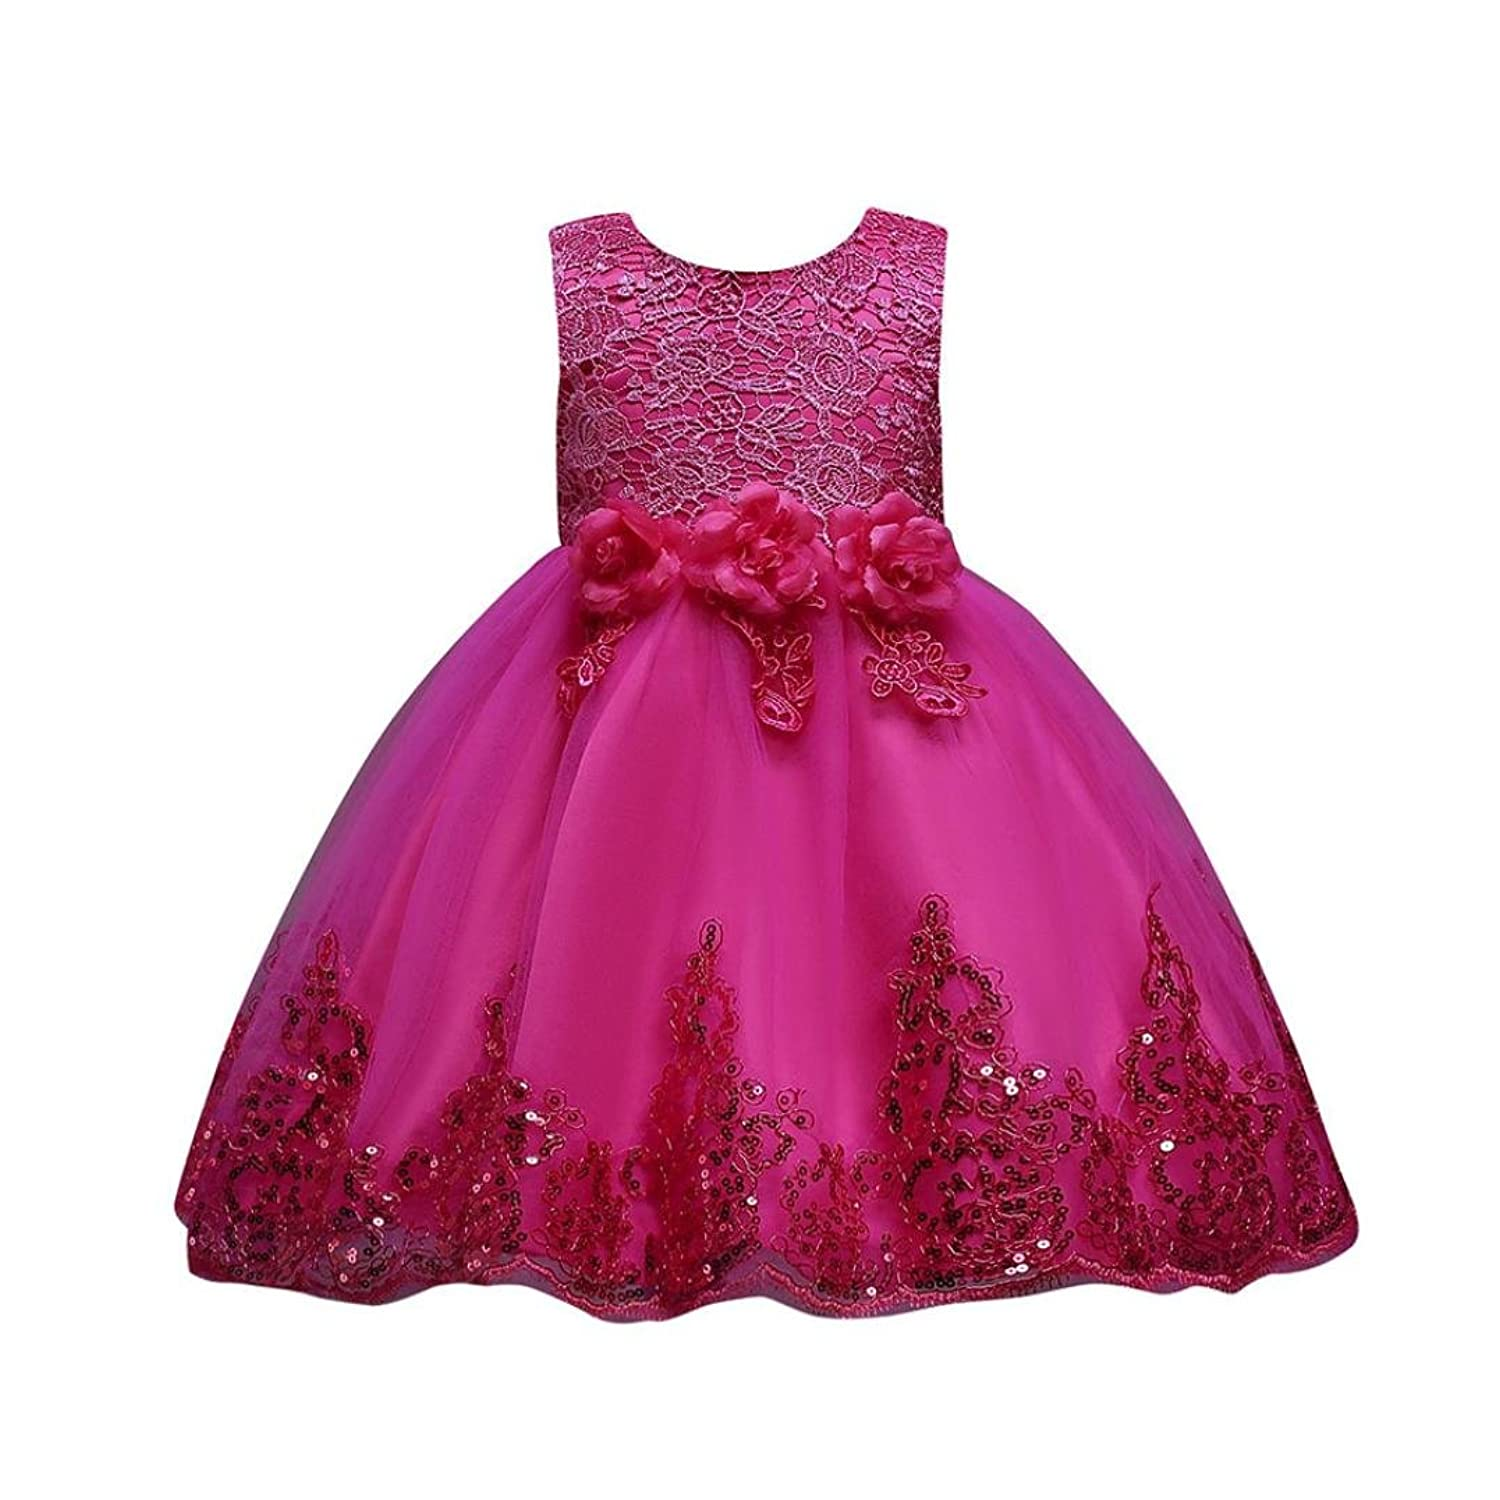 659d08c74ee ... Elevin Apparel Has Become Synonymous Of Fashion   ❤   Features  - Princess  Gown Dresses Combines Many Elements,A-Line,O-neck